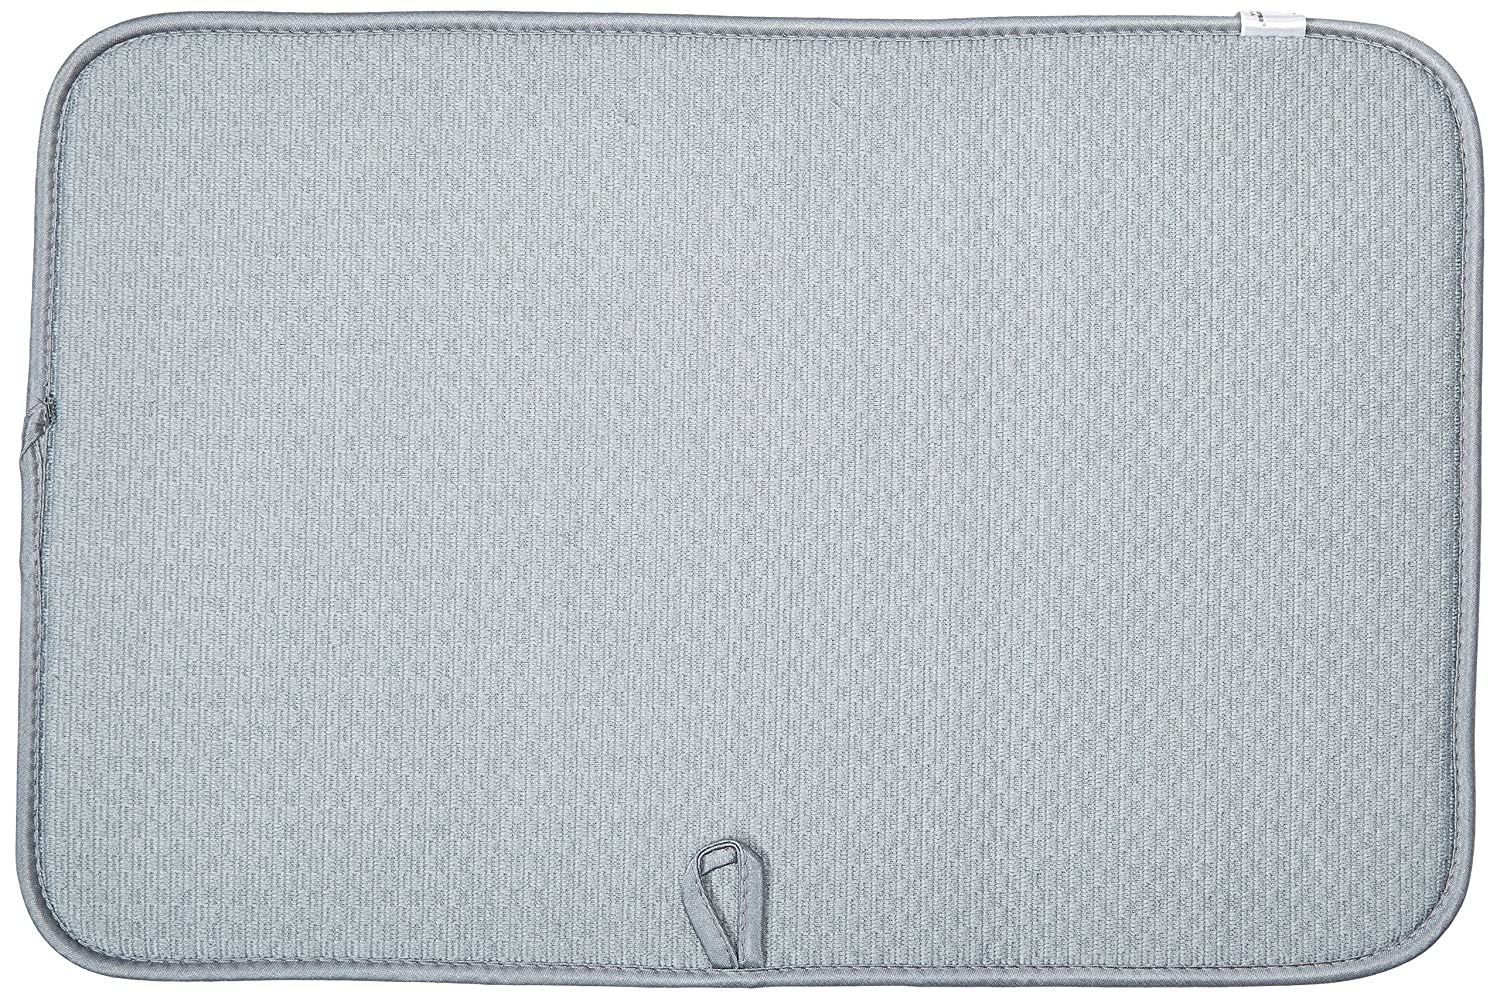 Norpro 18 by 12-Inch Microfiber Dish Drying Mat Gray